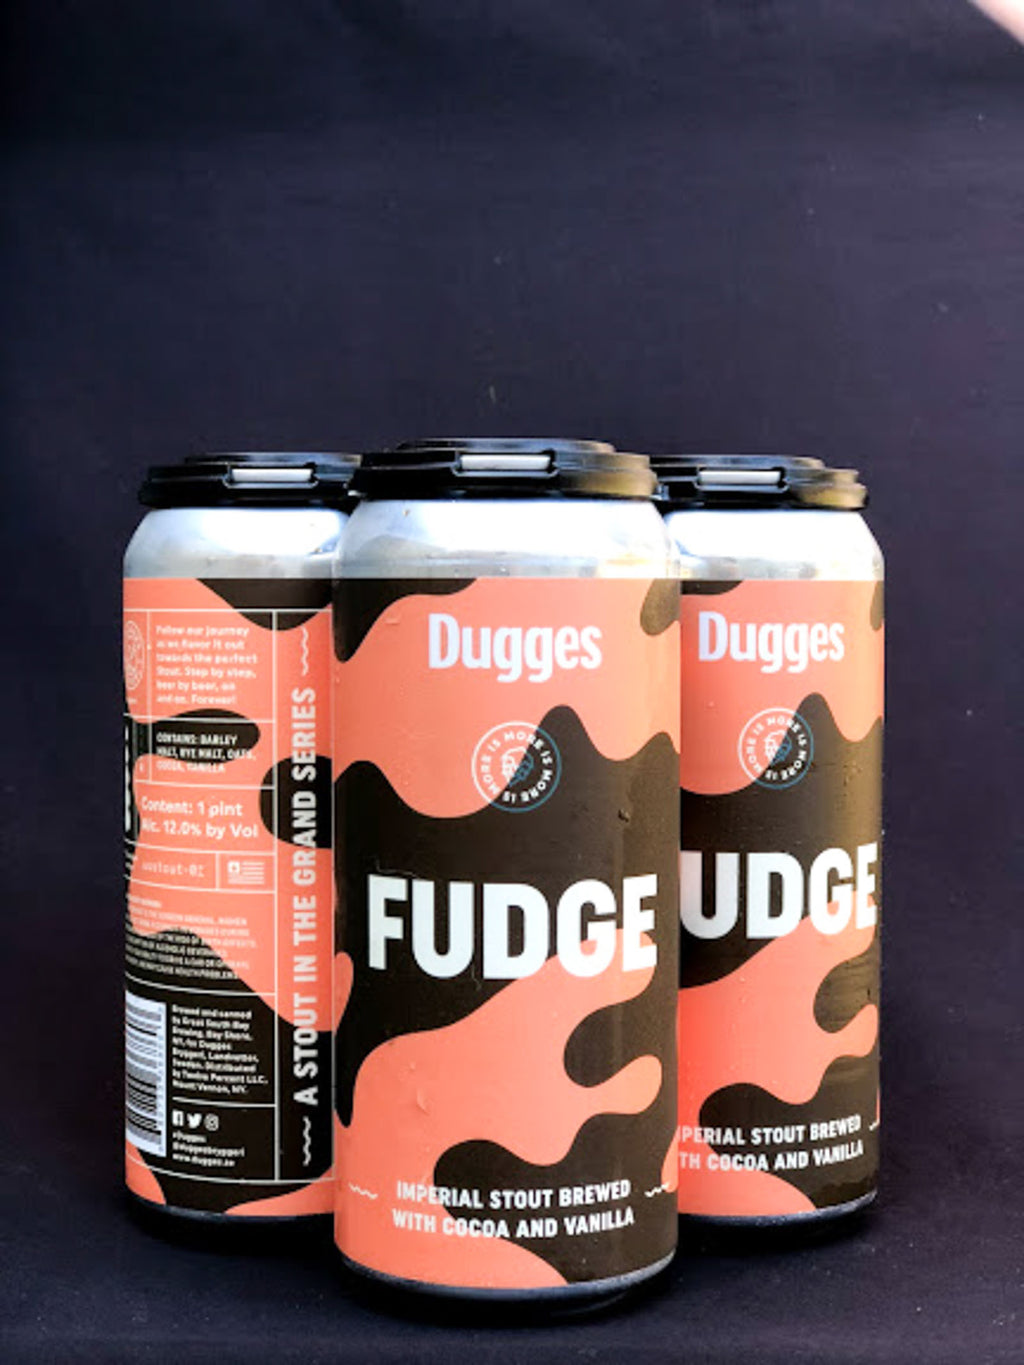 Buy Dugges Bryggeri Fudge Imperial Stout Online